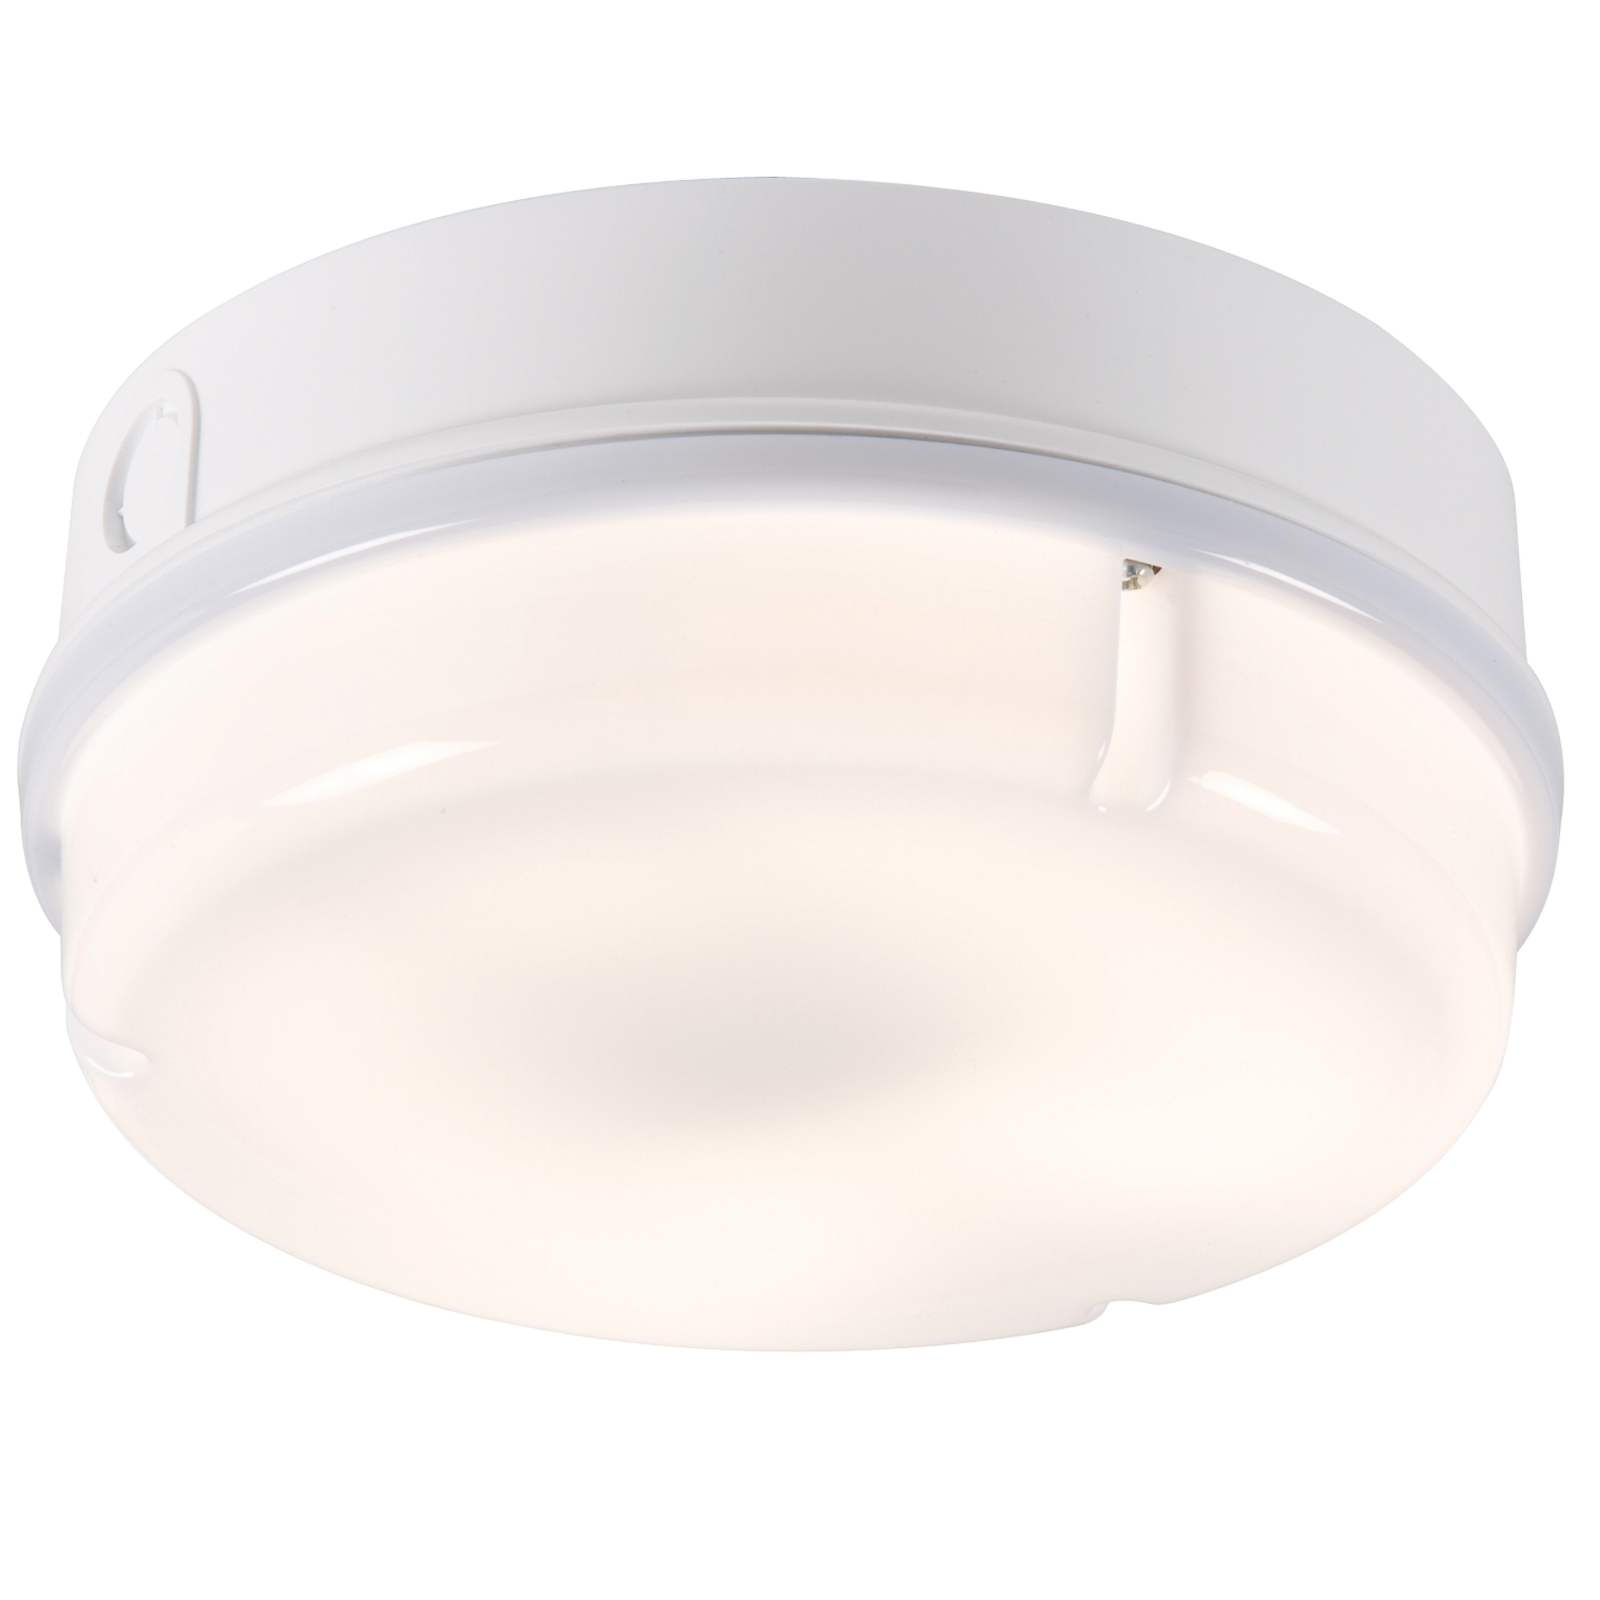 IP65 16W HF Round Bulkhead with Opal Diffuser and White Base